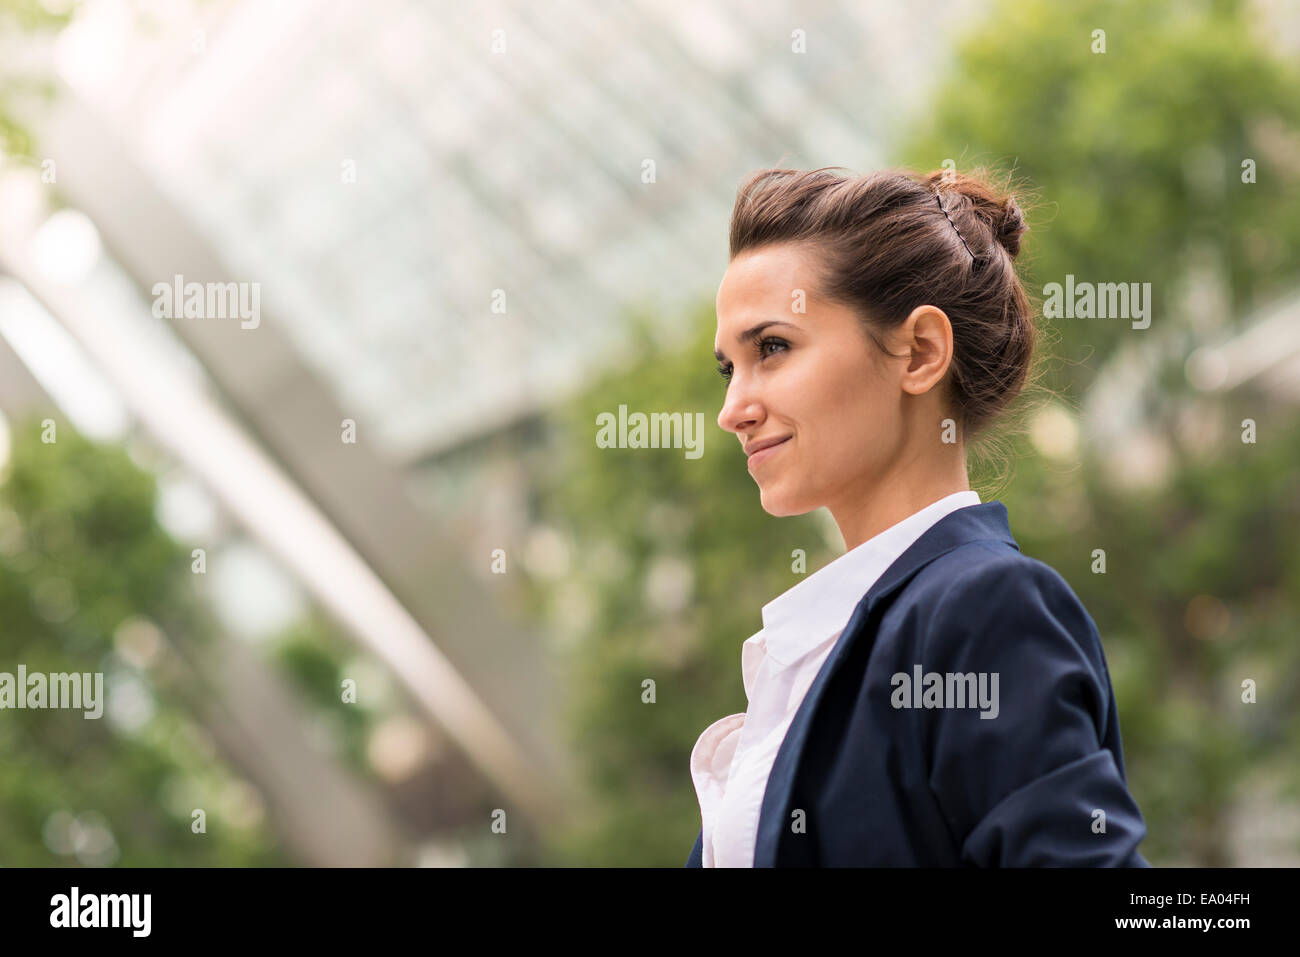 businesswoman at Broadgate Tower, London, UK - Stock Image